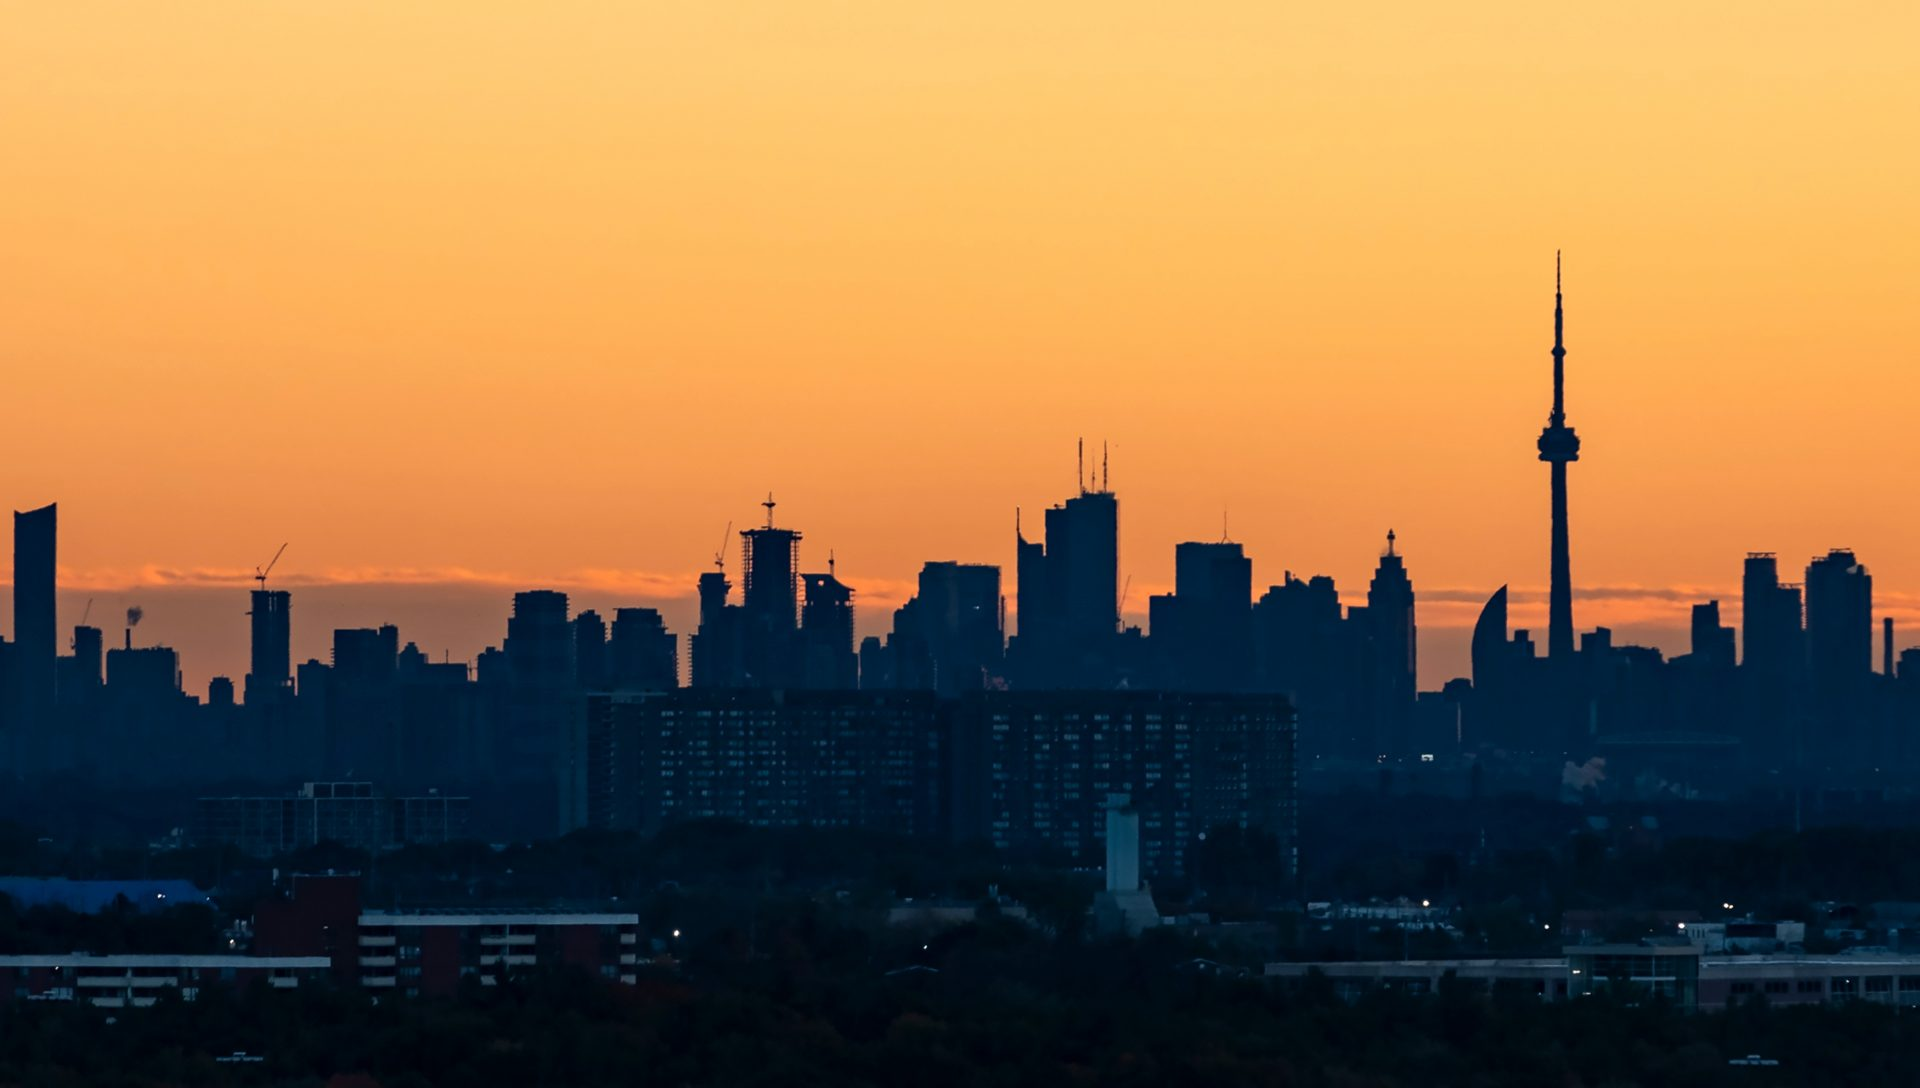 Environment Canada's Heat Warning remains in effect for Toronto as humidex soars to 40°C